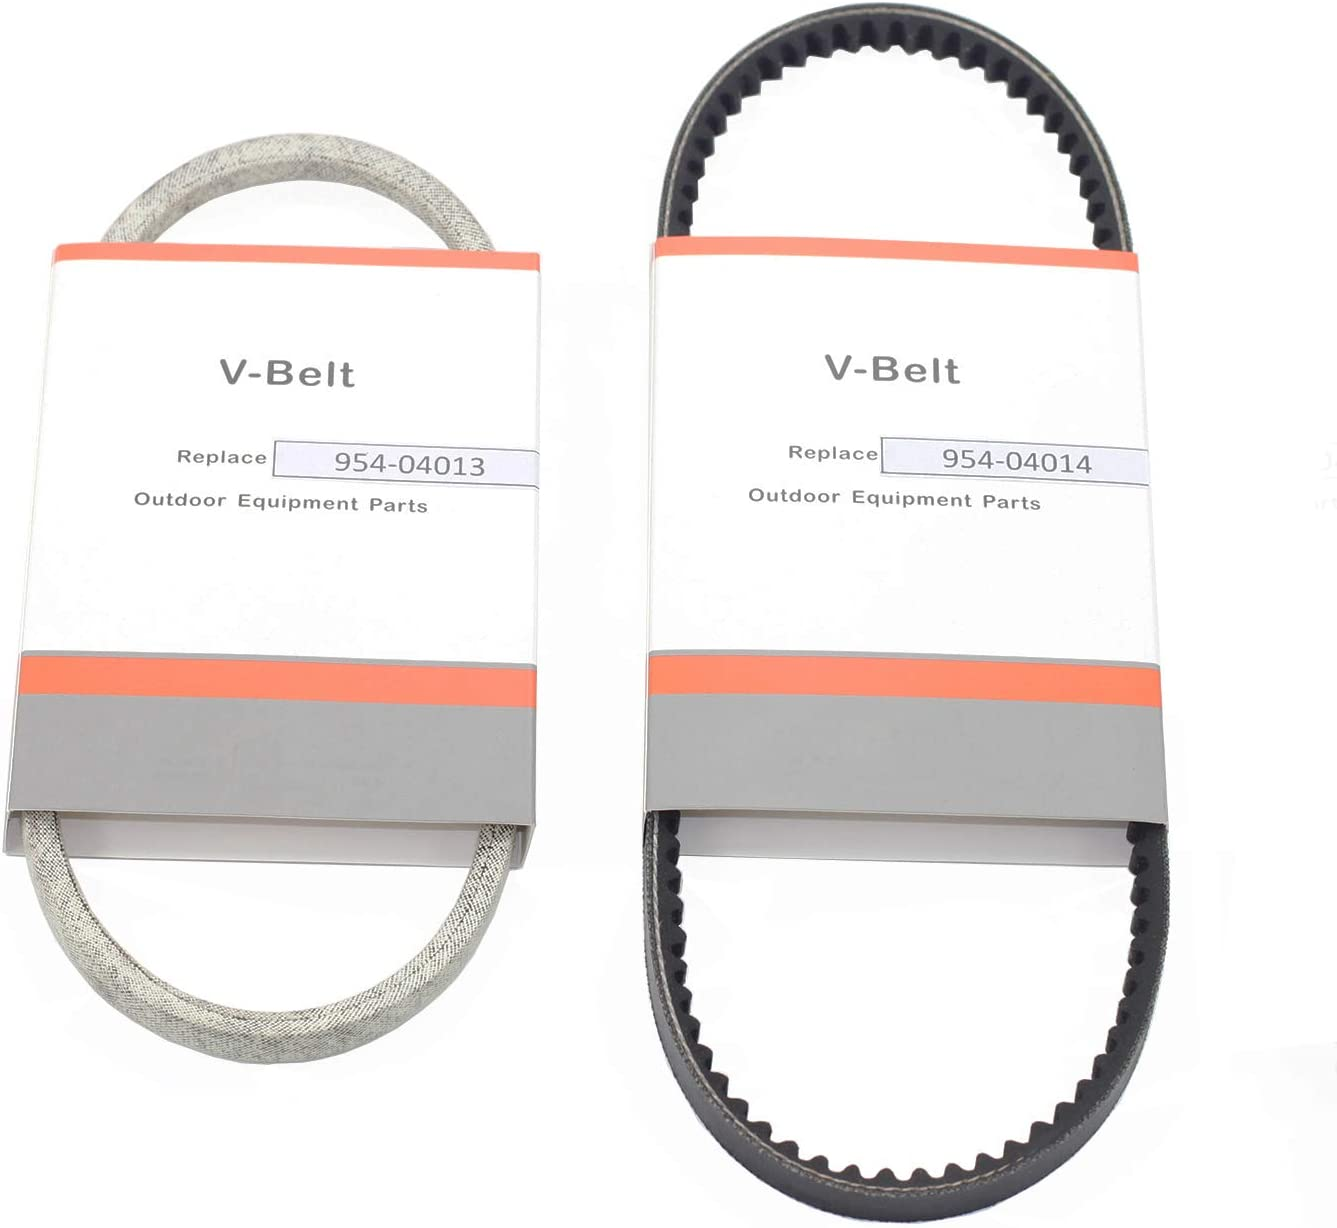 754-04013 New Belt Compatible Wtih MTD 954-04013 Snow Blower Belt New